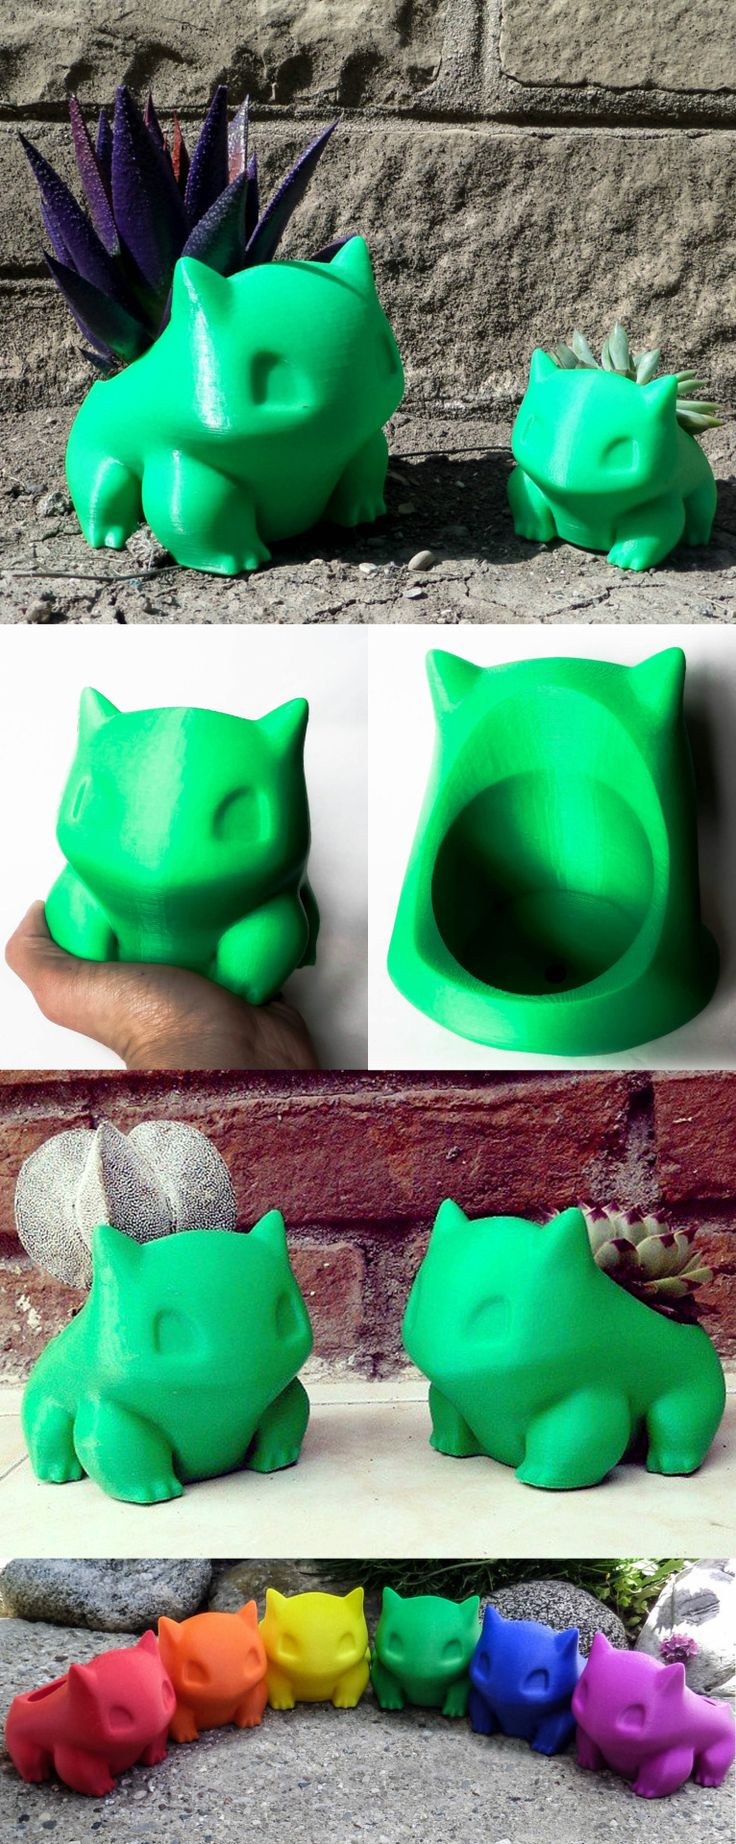 Bulbasaur Pokemon PlanterHelp Bulbasaur evolve with the flower of your choice in these fantastic 3D-printed Pokemon planters. Bulbasaur will create the ideal companion as he sits on your desktop or window sill, where you can water and watch his bulb flourish.Click here to check it out!Or here to find more awesome merchandise